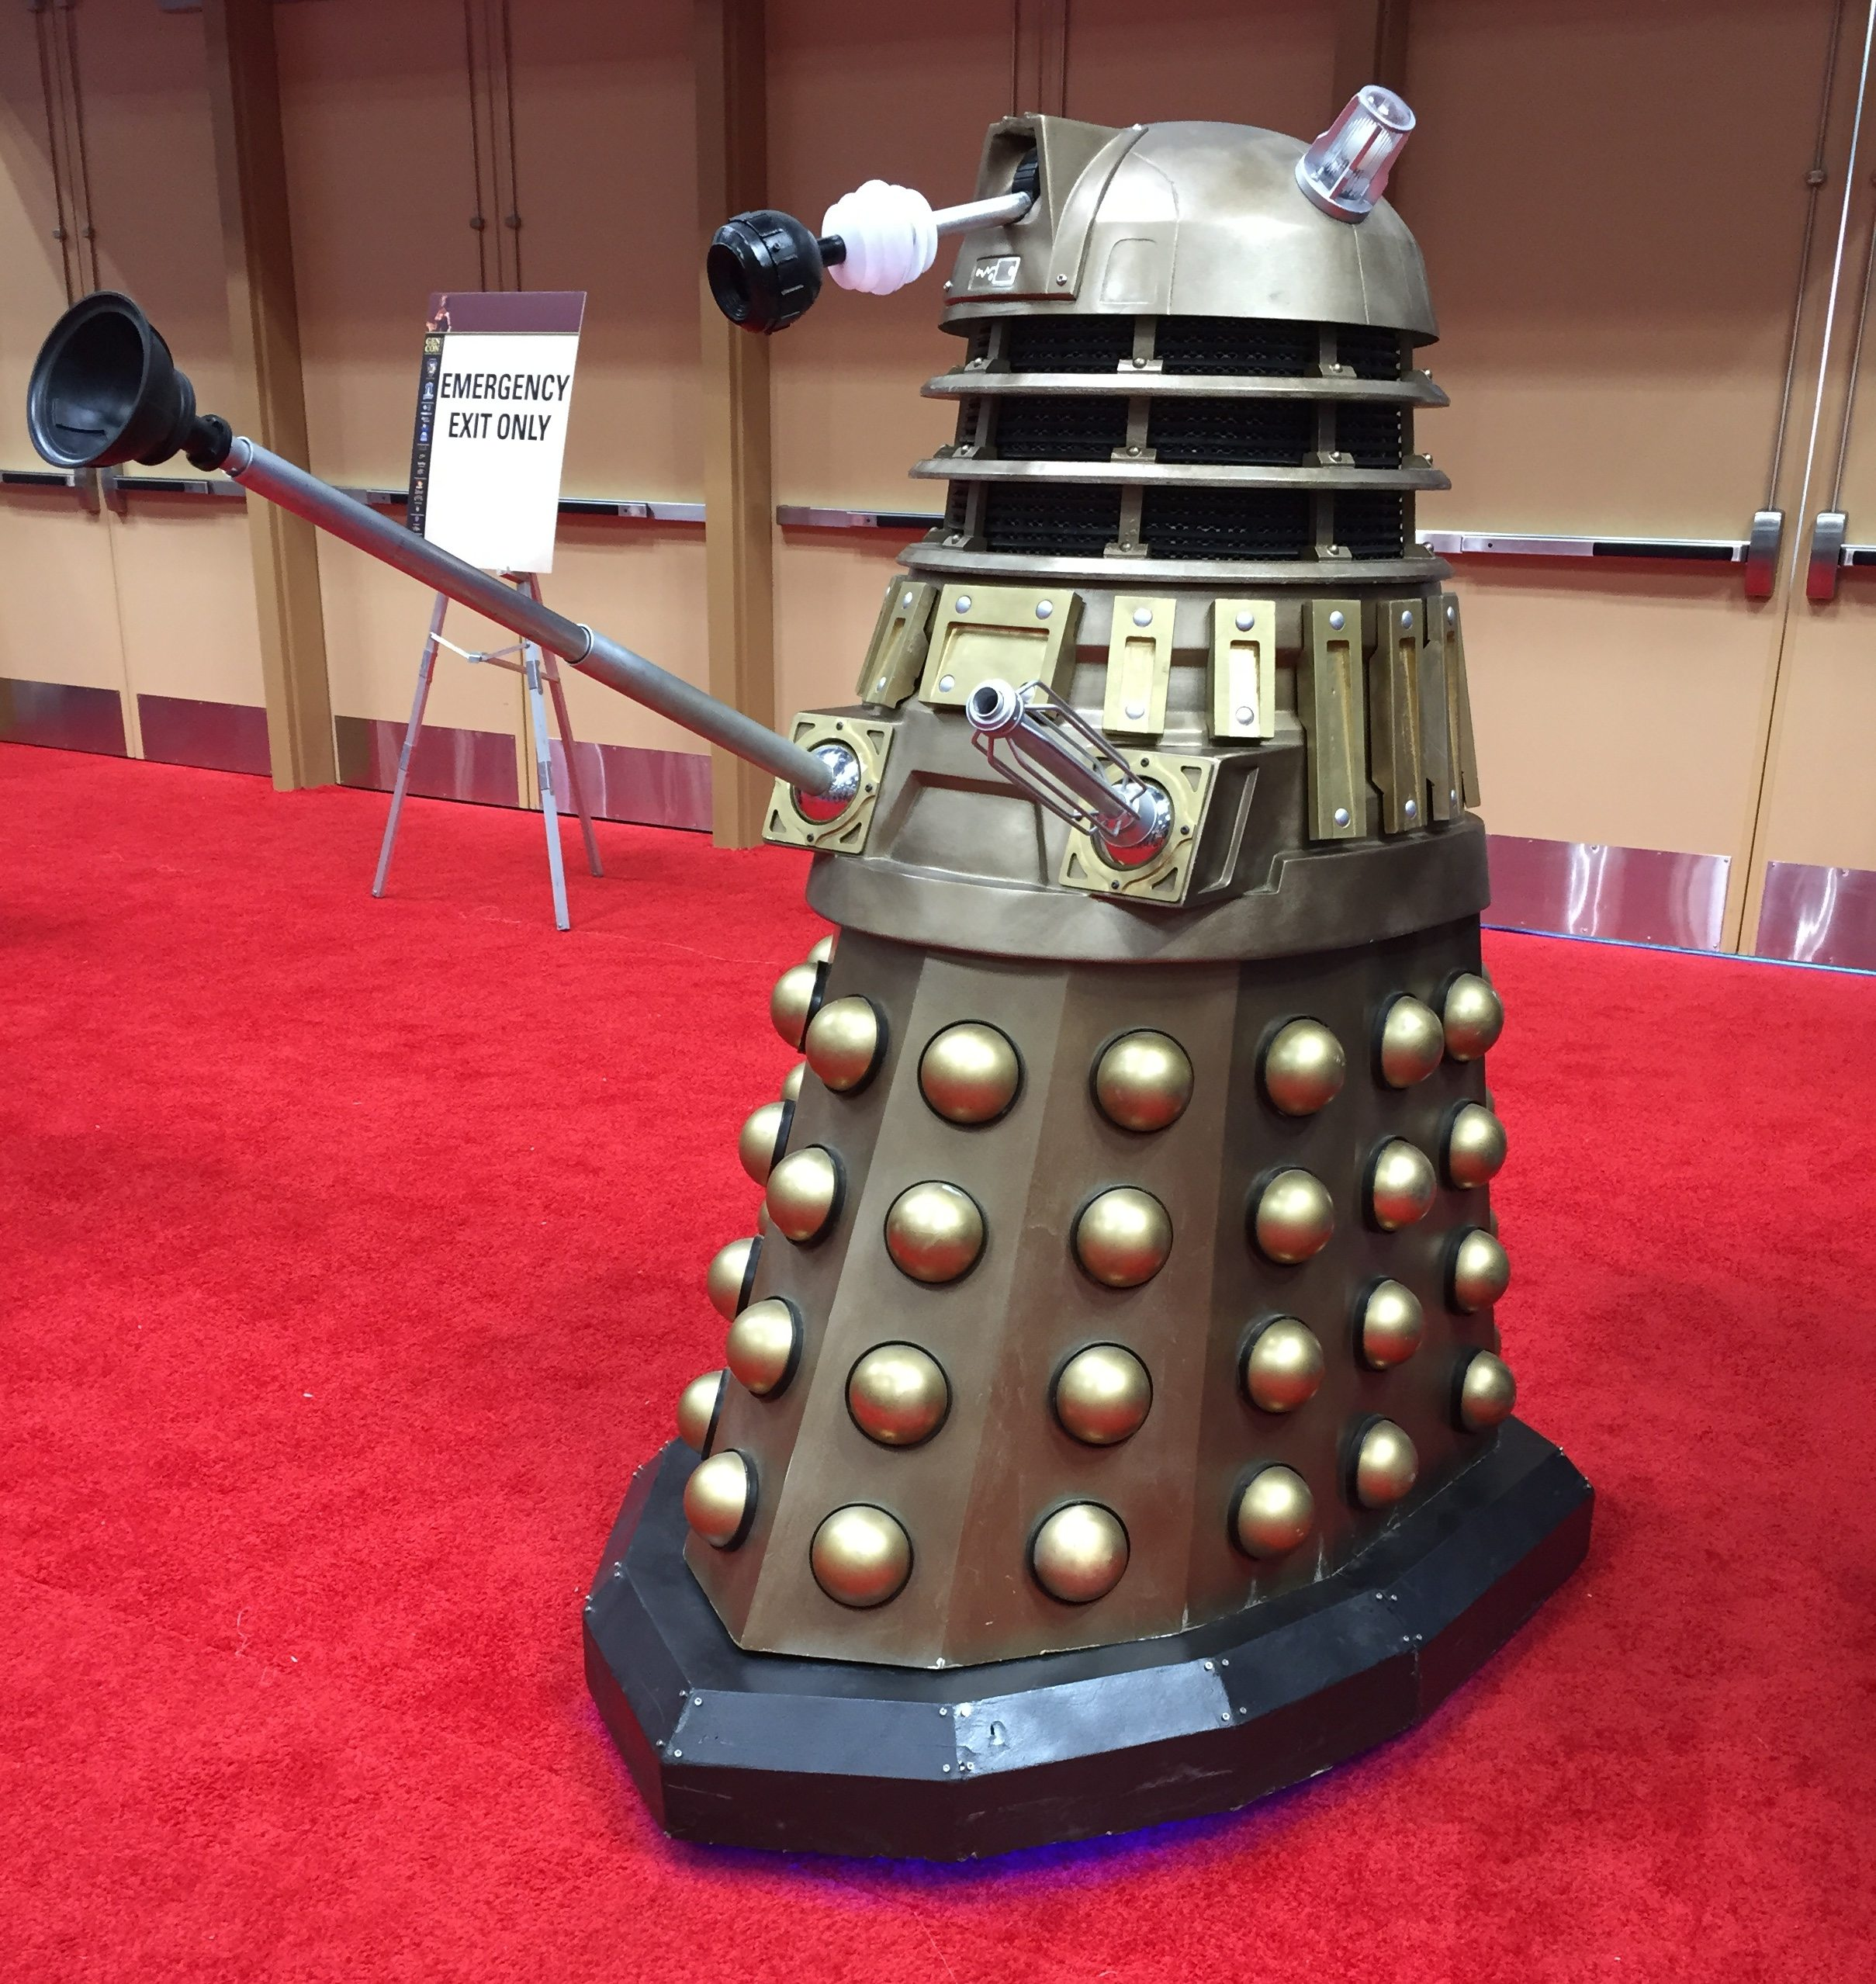 The Dalek at the Dr. Who merchandise booth is a staple of GenCon